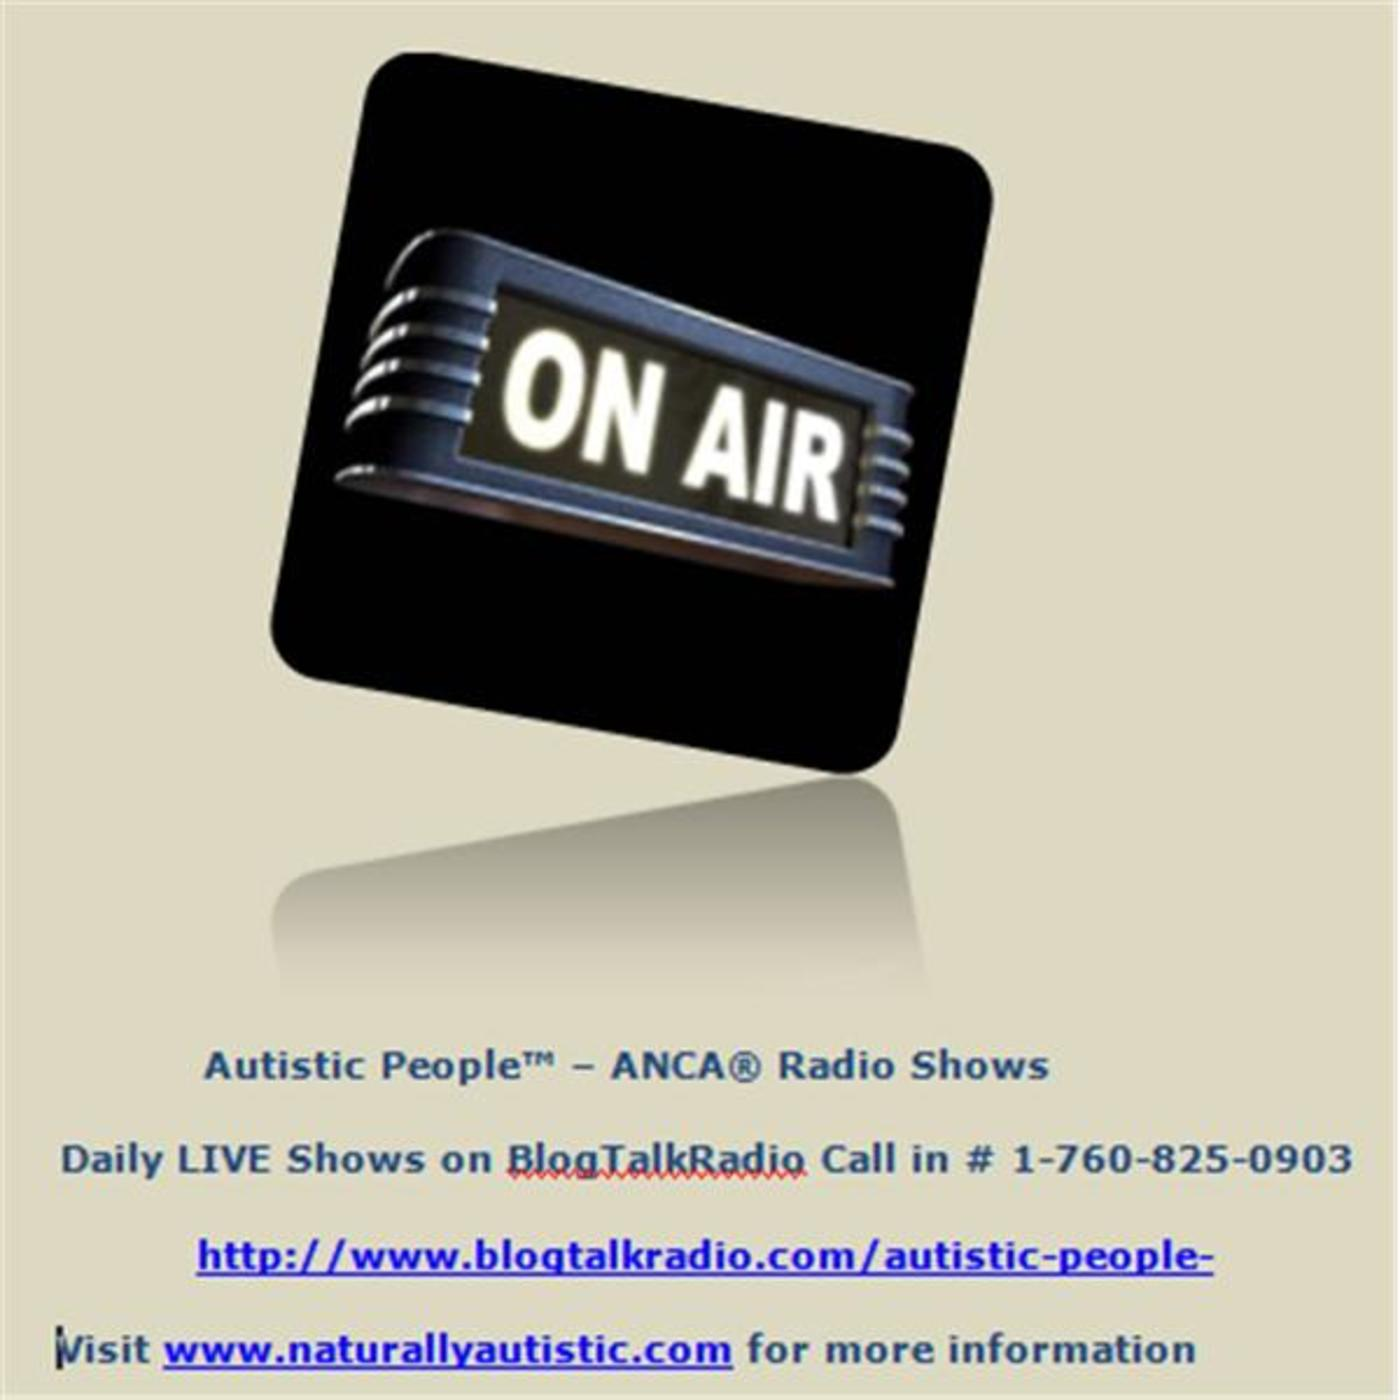 ANCA Radio Shows, Autistic People